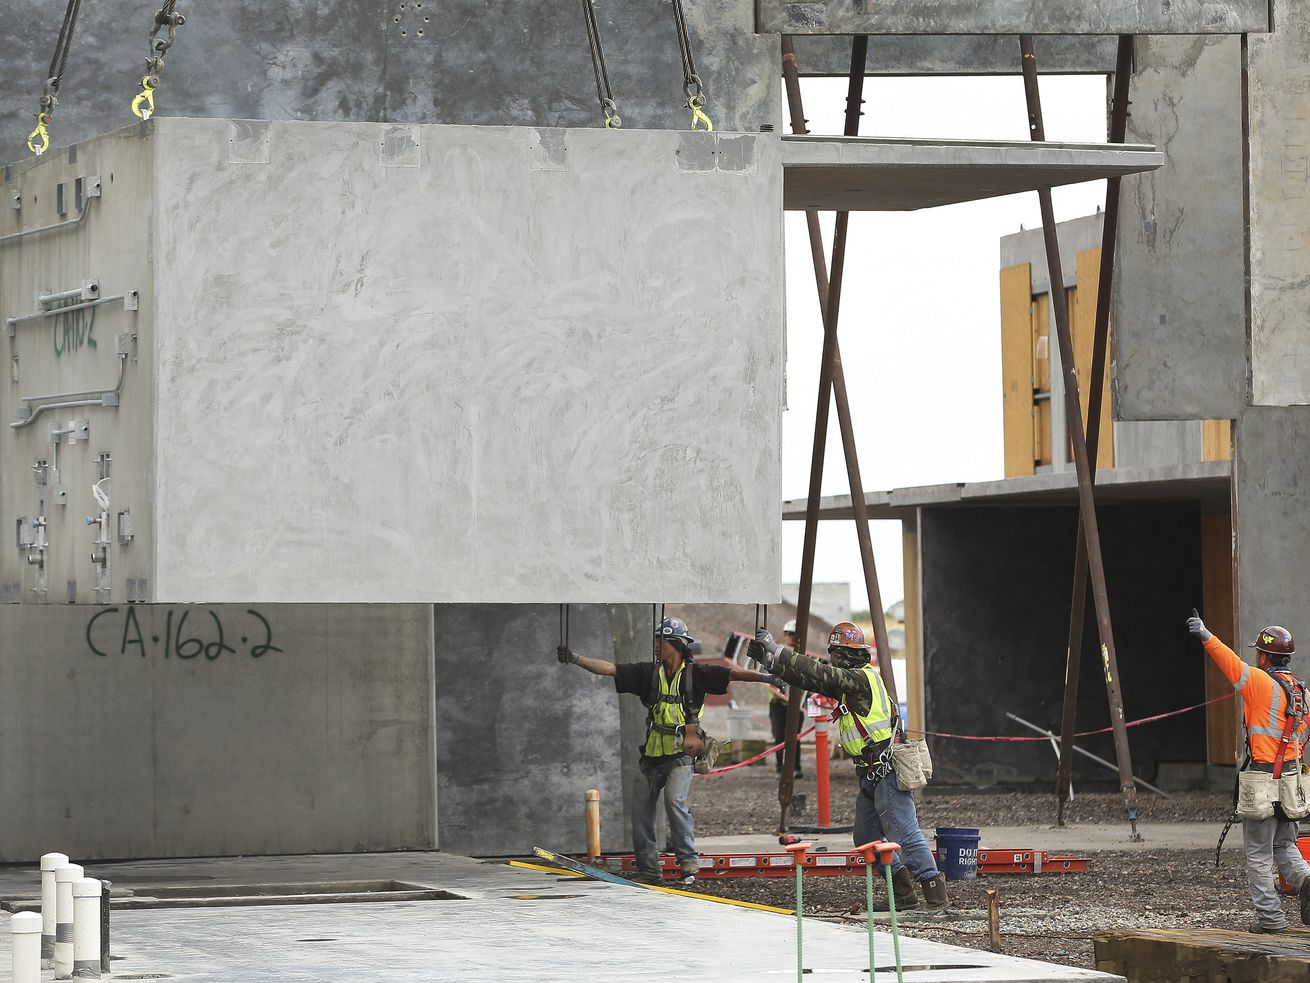 Construction crews install a men's maximum security cell module at the new state prison in Salt Lake City on Wednesday, Sept. 11, 2019.